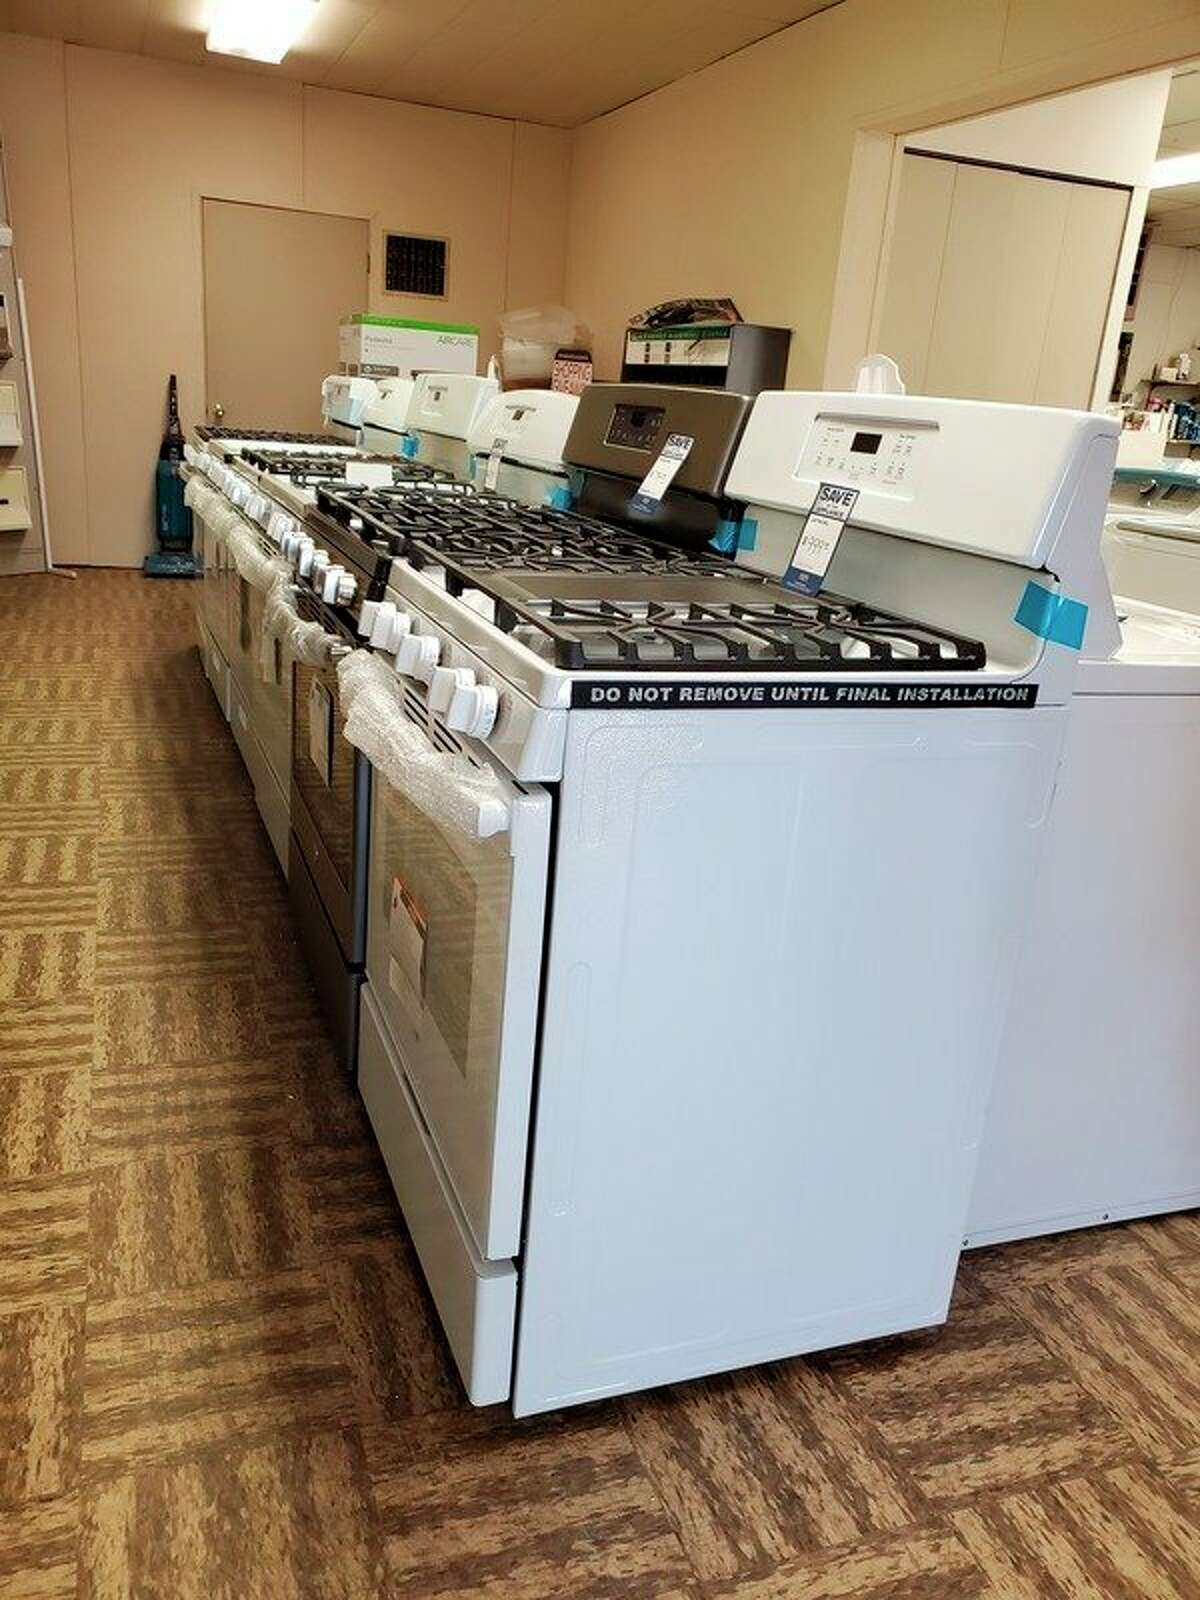 In addition to the full-line hardware, the store also sells a wide variety of home appliances.(Scott Nunn/Huron Daily Tribune)